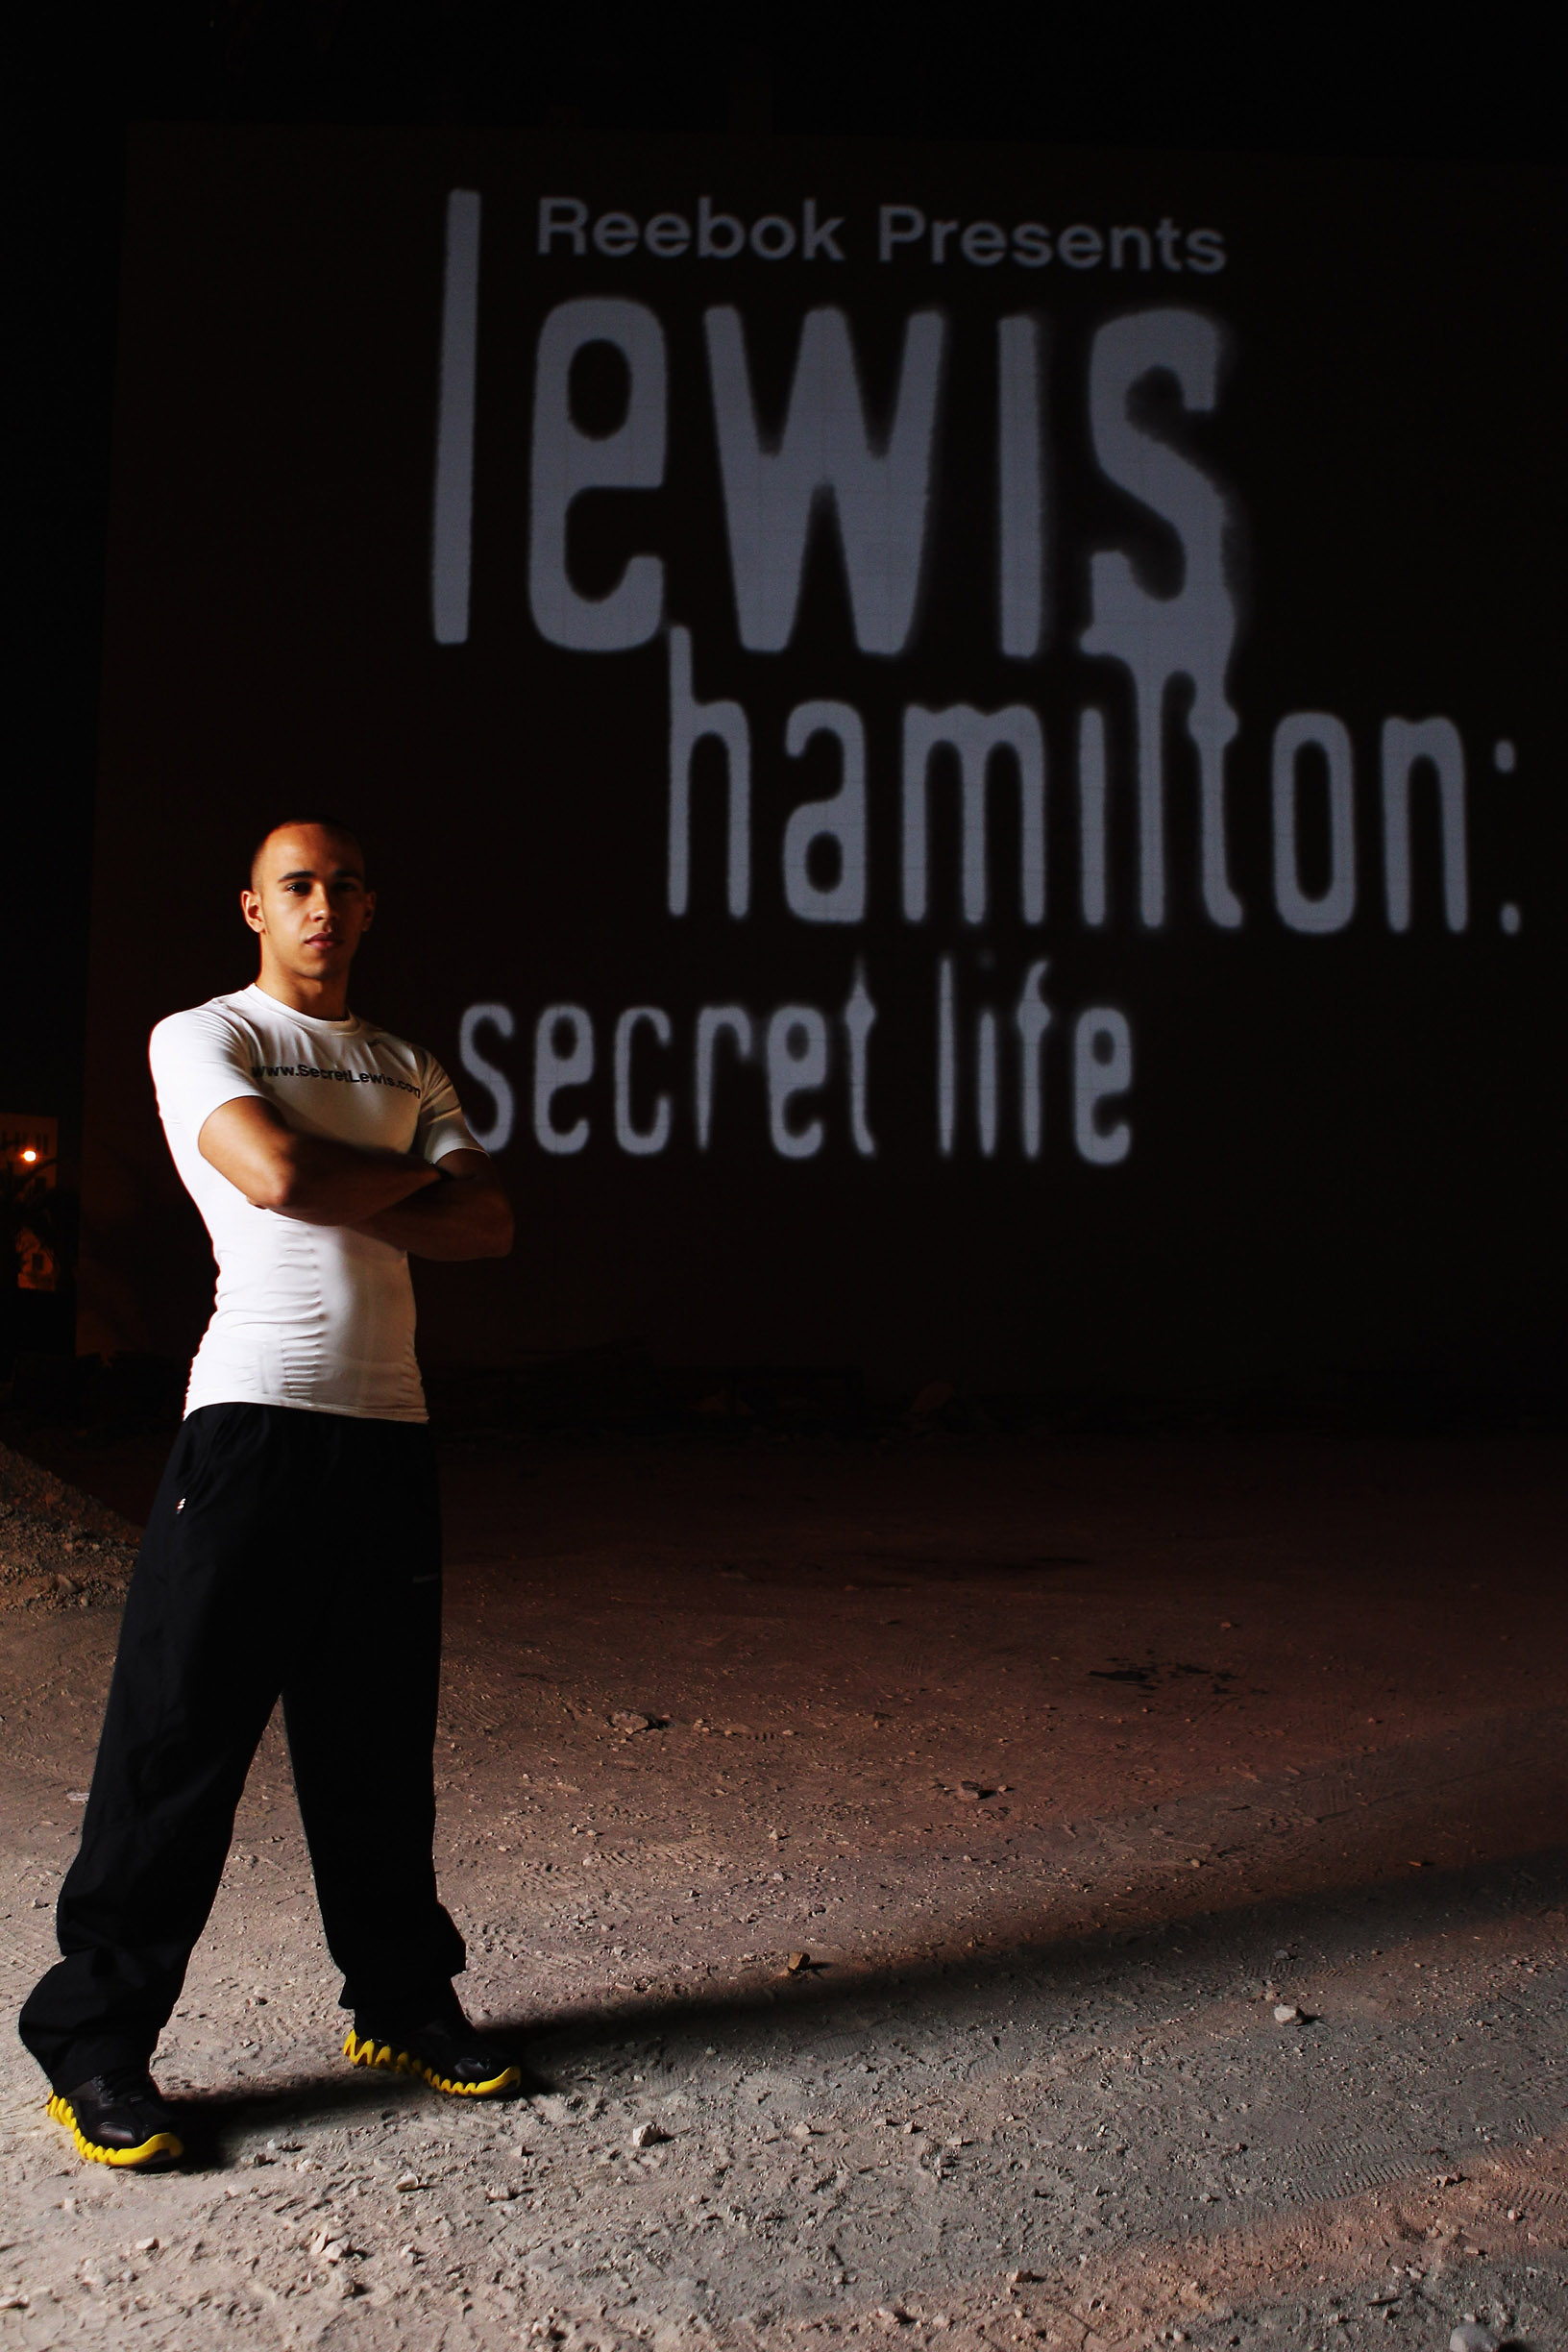 Building Projection Bahrain Lewis Hamilton: Secret Life Launch